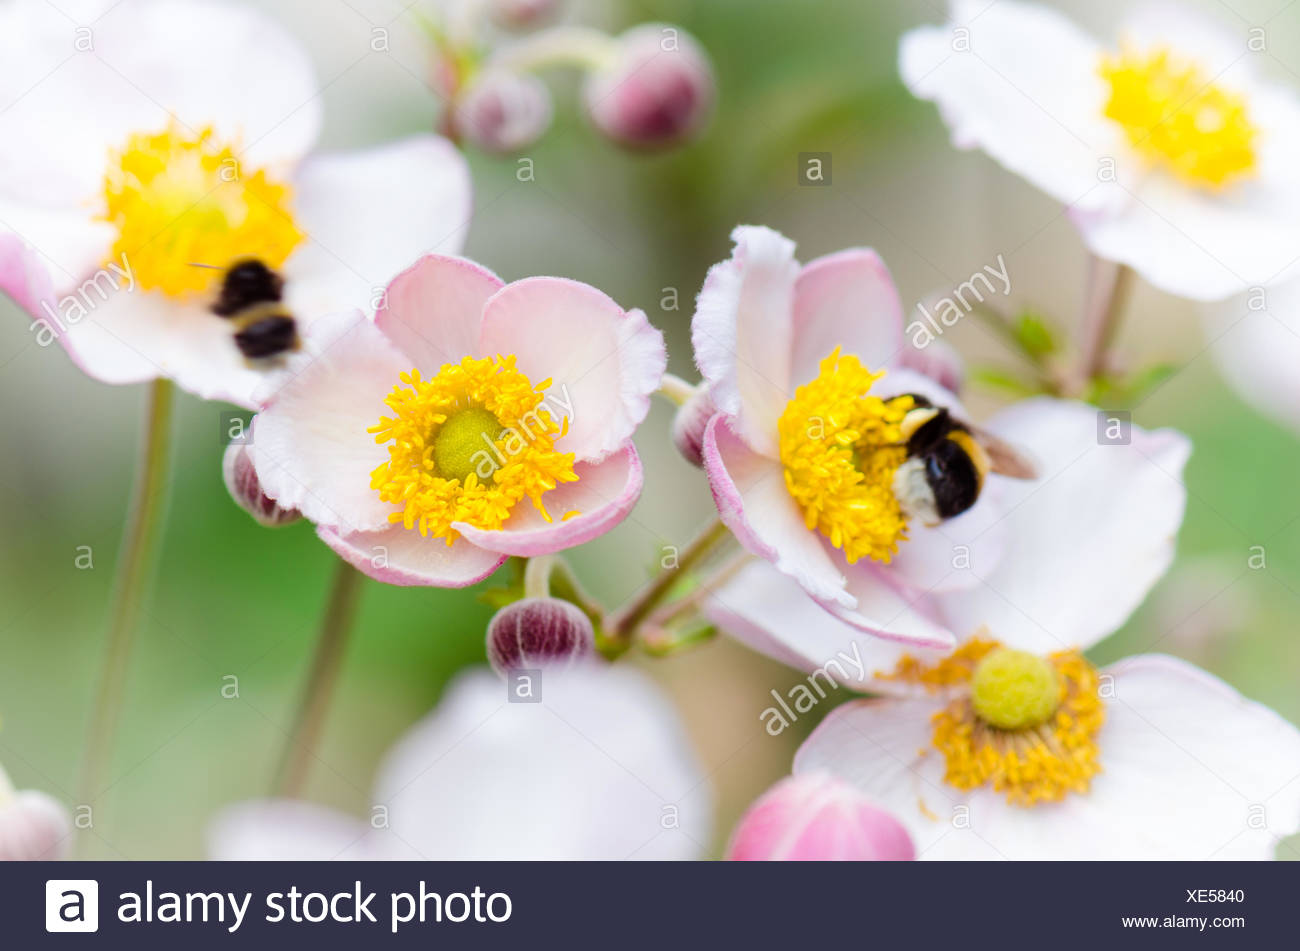 a bee collects pollen from flower, close-up - Stock Image